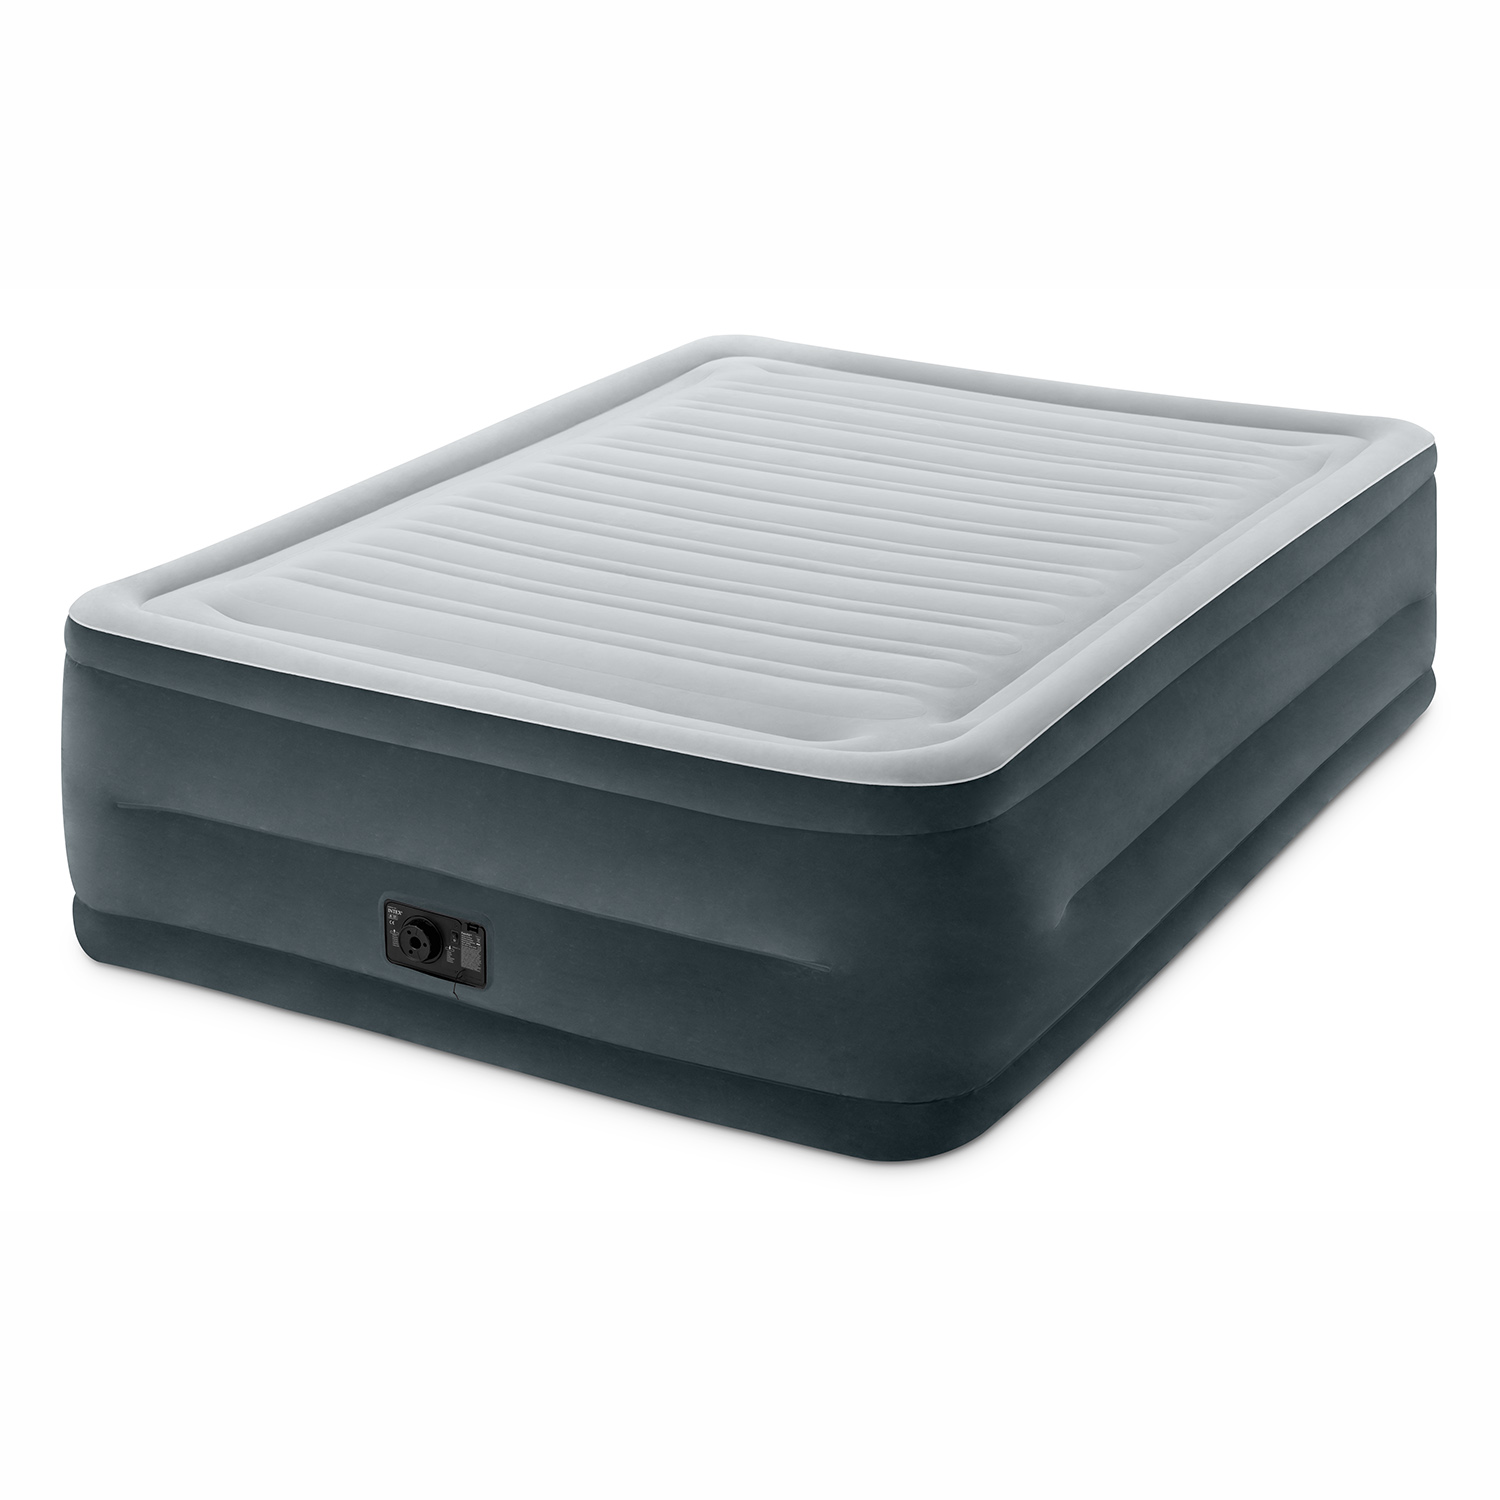 "Intex Queen 22"" DuraBeam High Rise Airbed Mattress with Built-in Pump"